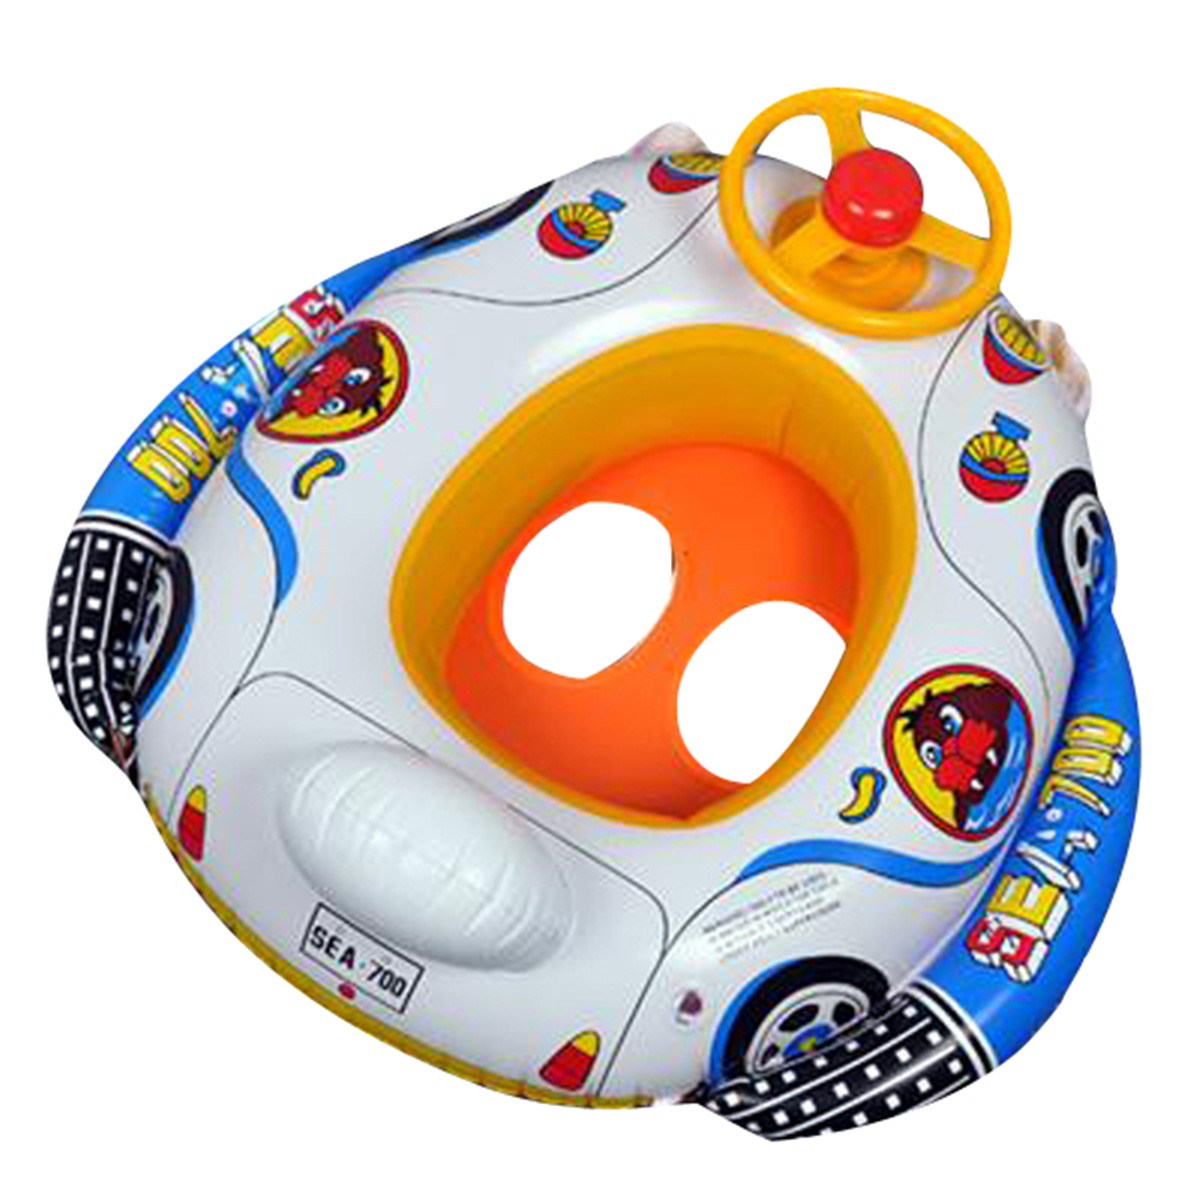 Baby Inflatable Swimming Pool Ring Seat Floating Car Shape Boat Aid Trainer with Wheel Horn